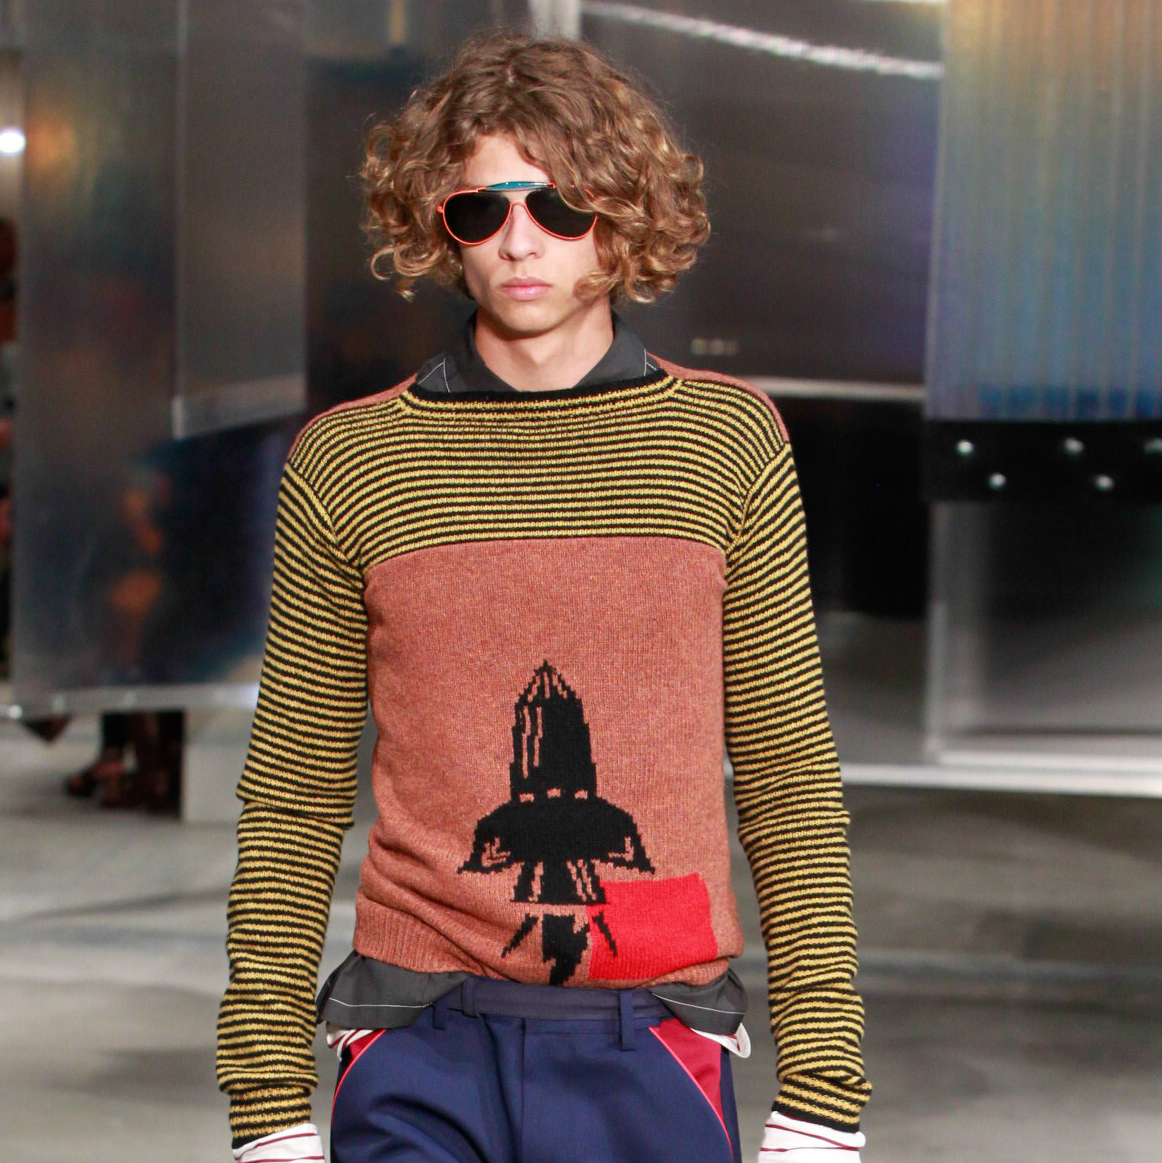 Prada men's ready to wear spring 2016